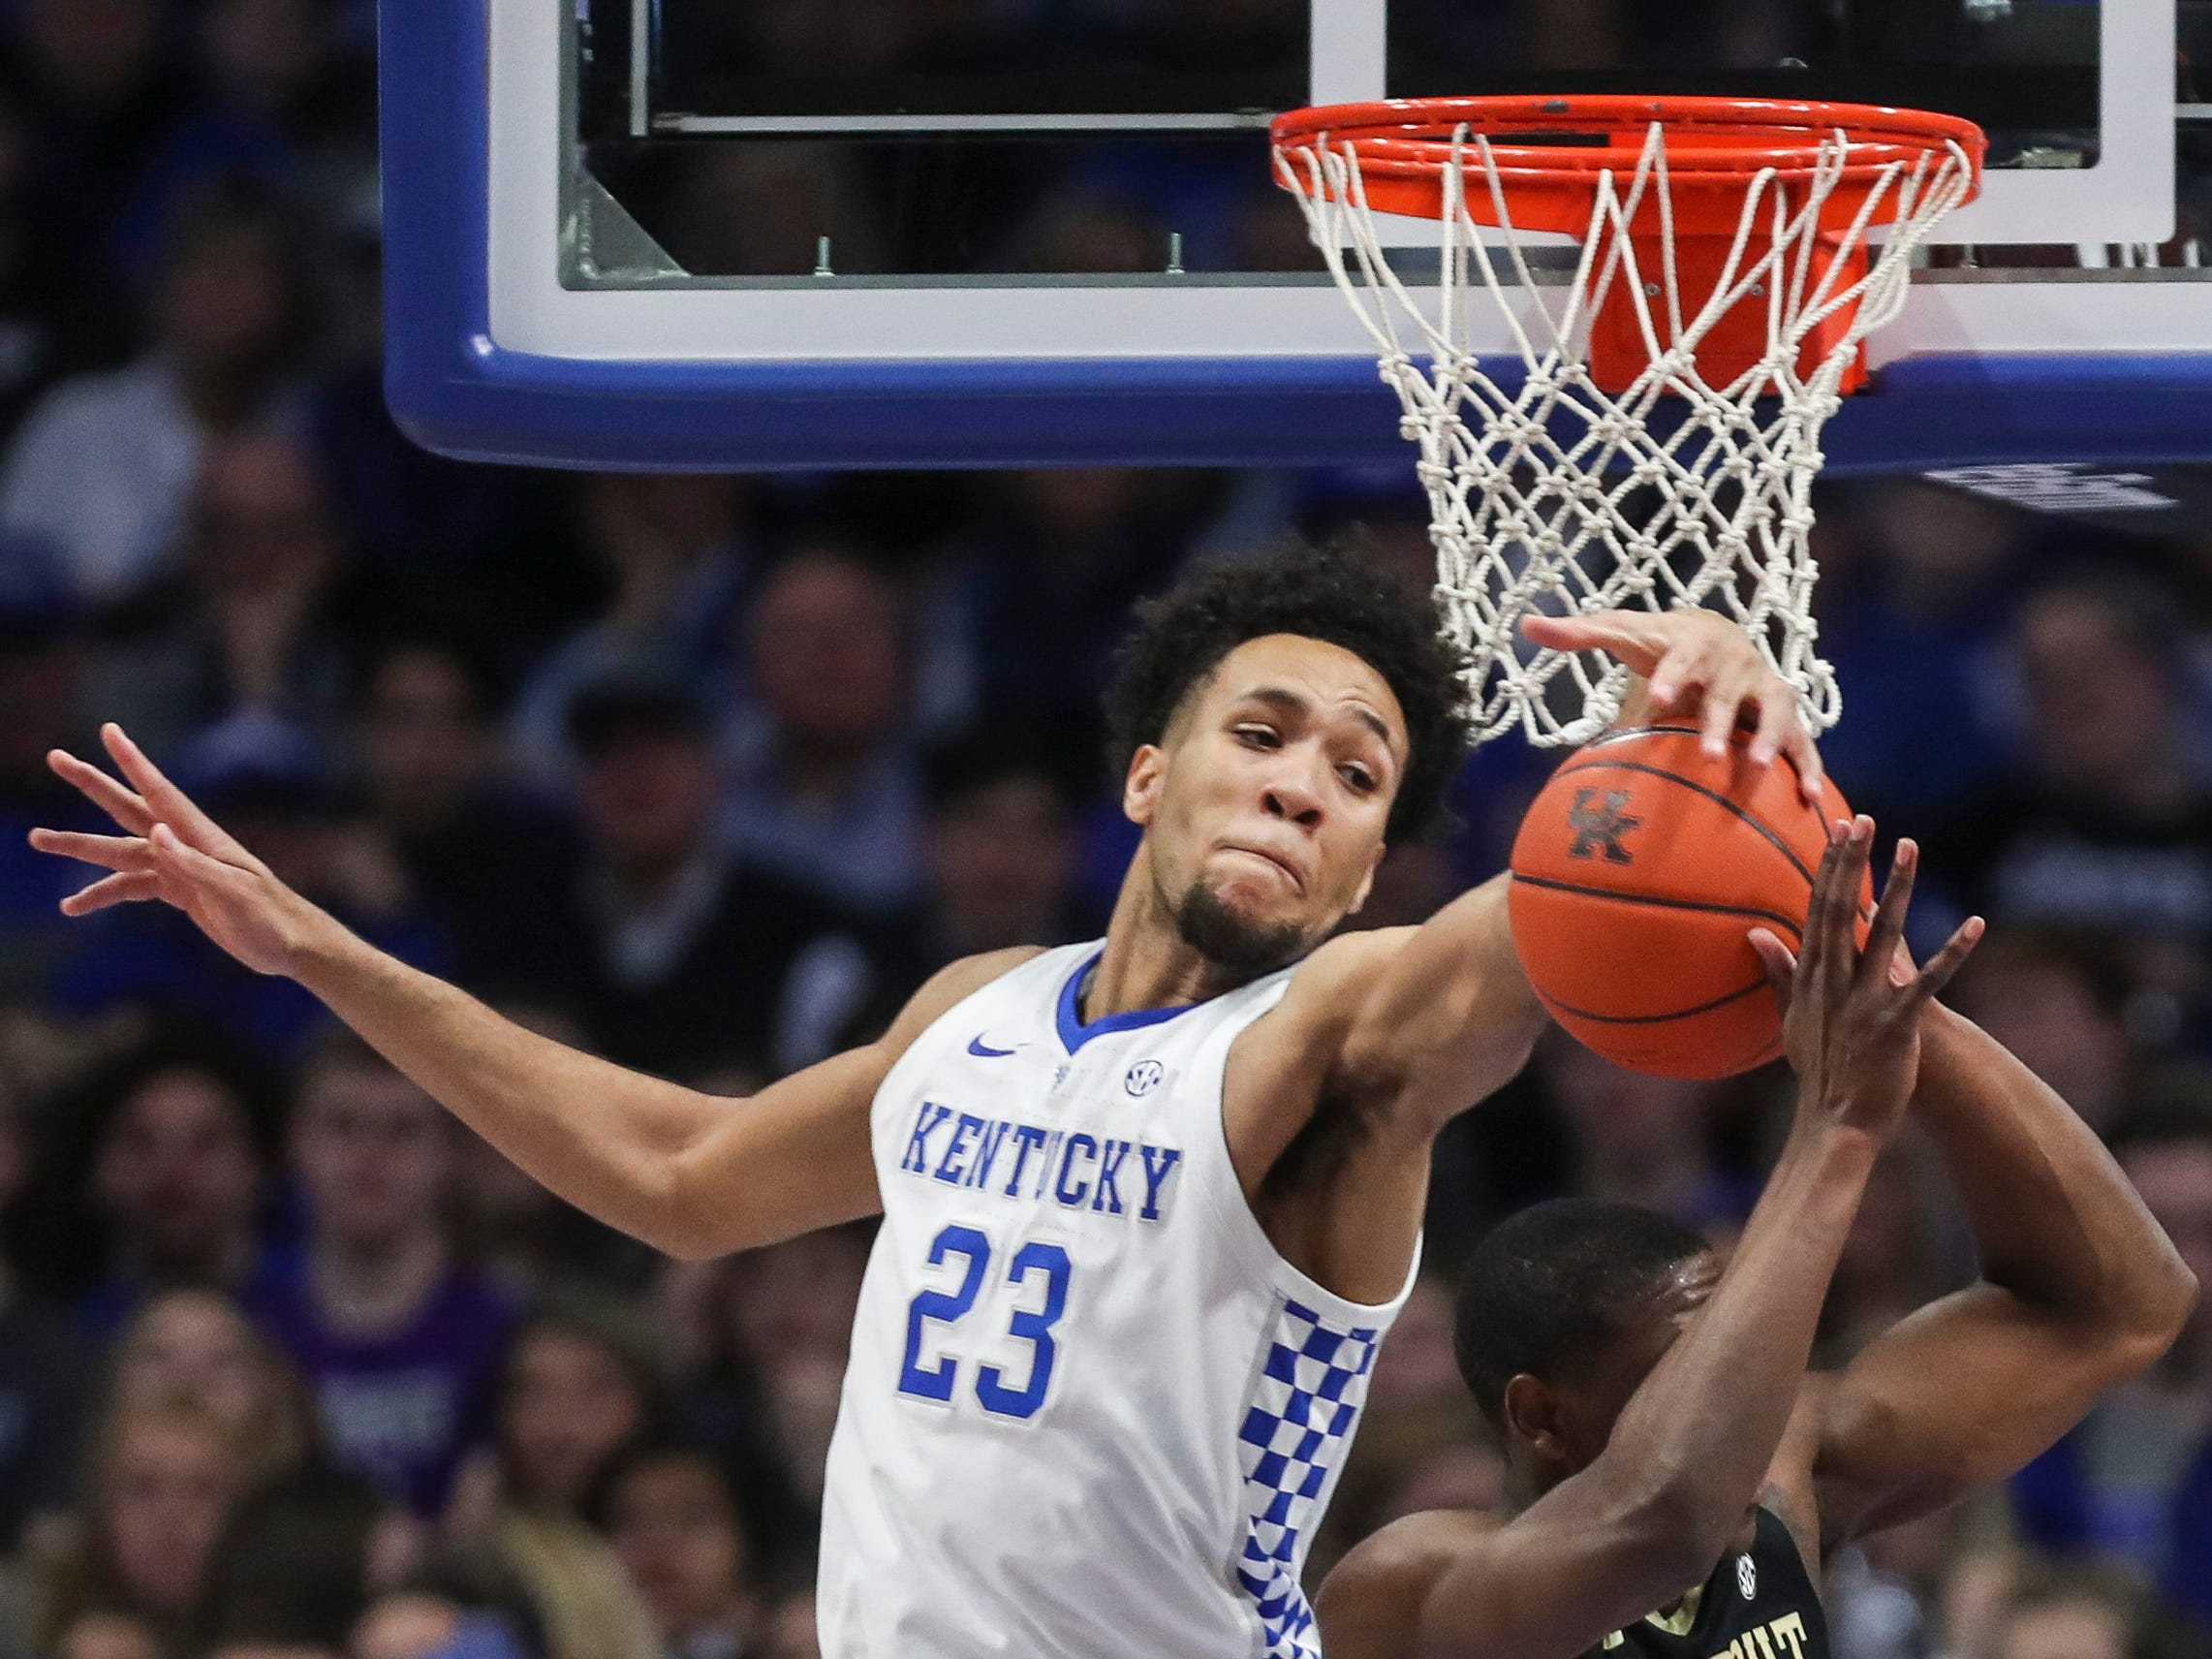 Kentucky's EJ Montgomery blocks the shot of Vanderbilt's Maxwell Evans Saturday night at Rupp Arena in Lexington. January 12, 2019